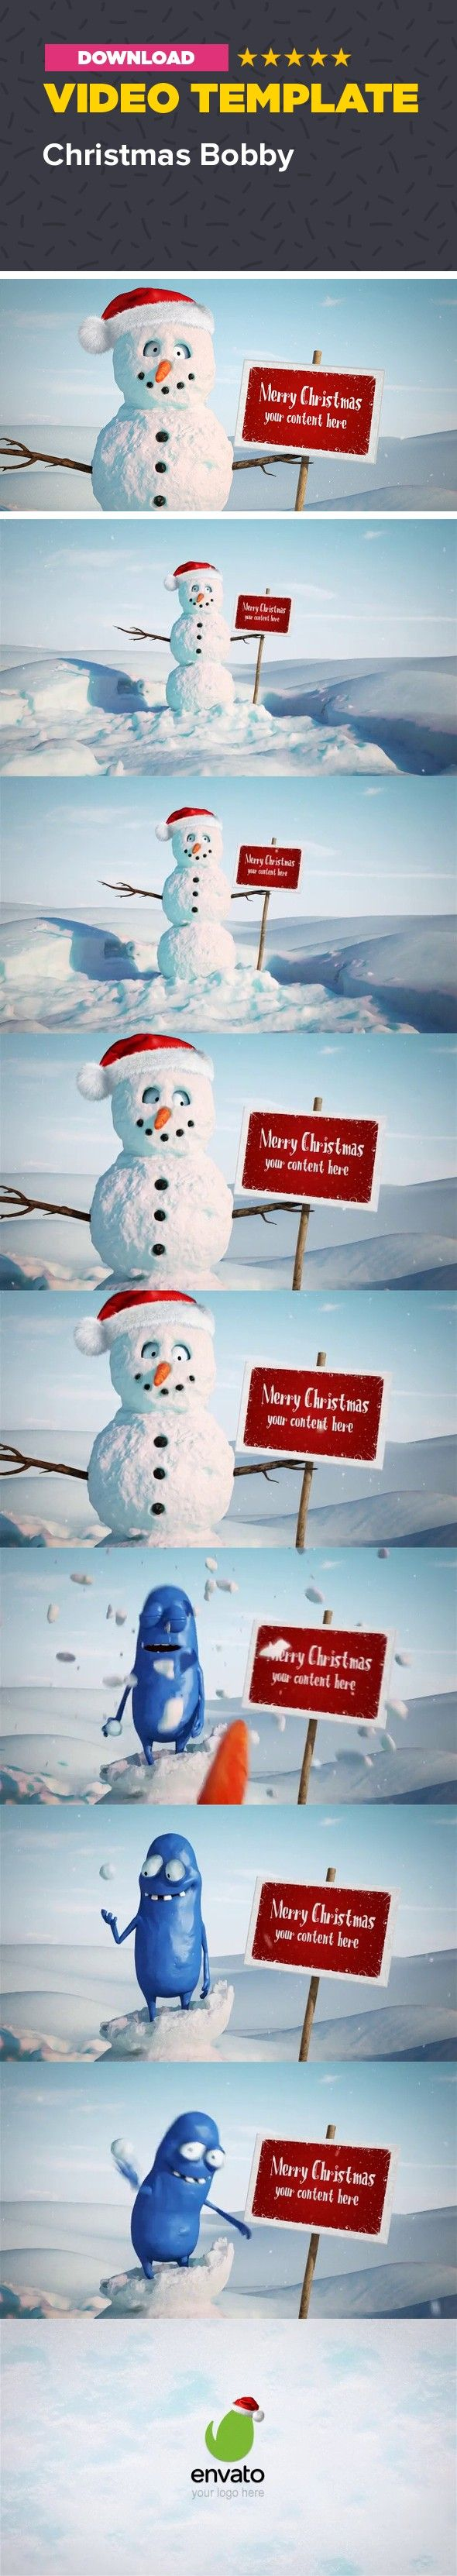 3d, animation, cartoon, character, christmas, funny, holiday, logo, merry, new year, snow, snowman, winter, xmas                     After Effects CS4 and above Full HD resolution – 1920×1080 / 24fps / 15 sec No plug-ins required Very fast render – about 4 minutes on I7 There are 2 placeholders. The sign and the logo at the end. To add your content just drag and drop it. You can remove the Christmas frame if you like and place a video or picture on the sign. There are masks for the…